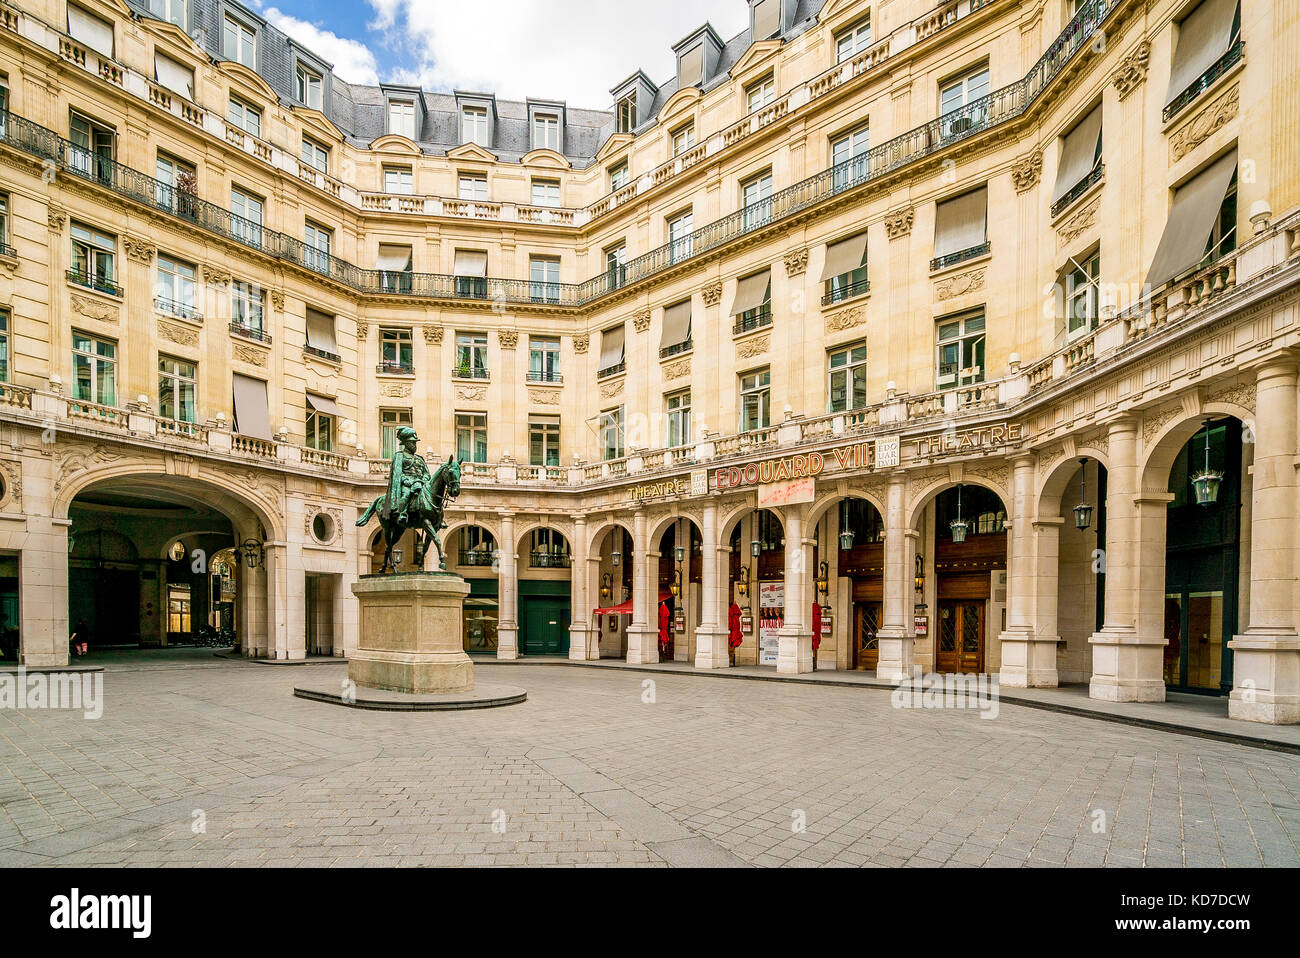 Square Édouard VII in Paris, France. The statue is of King Edward VII. - Stock Image